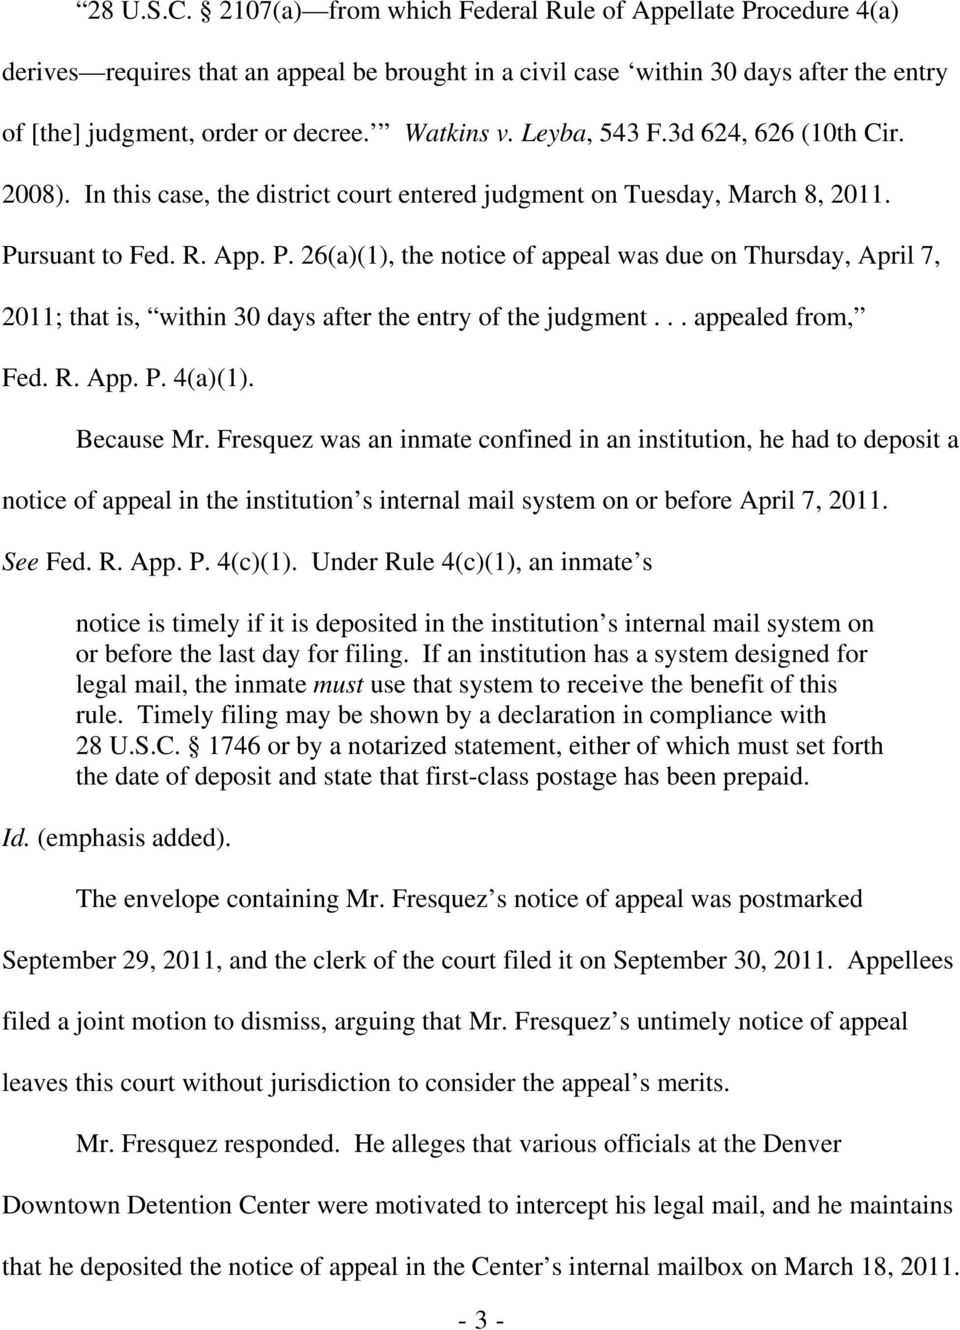 rsuant to Fed. R. App. P. 26(a)(1), the notice of appeal was due on Thursday, April 7, 2011; that is, within 30 days after the entry of the judgment... appealed from, Fed. R. App. P. 4(a)(1).